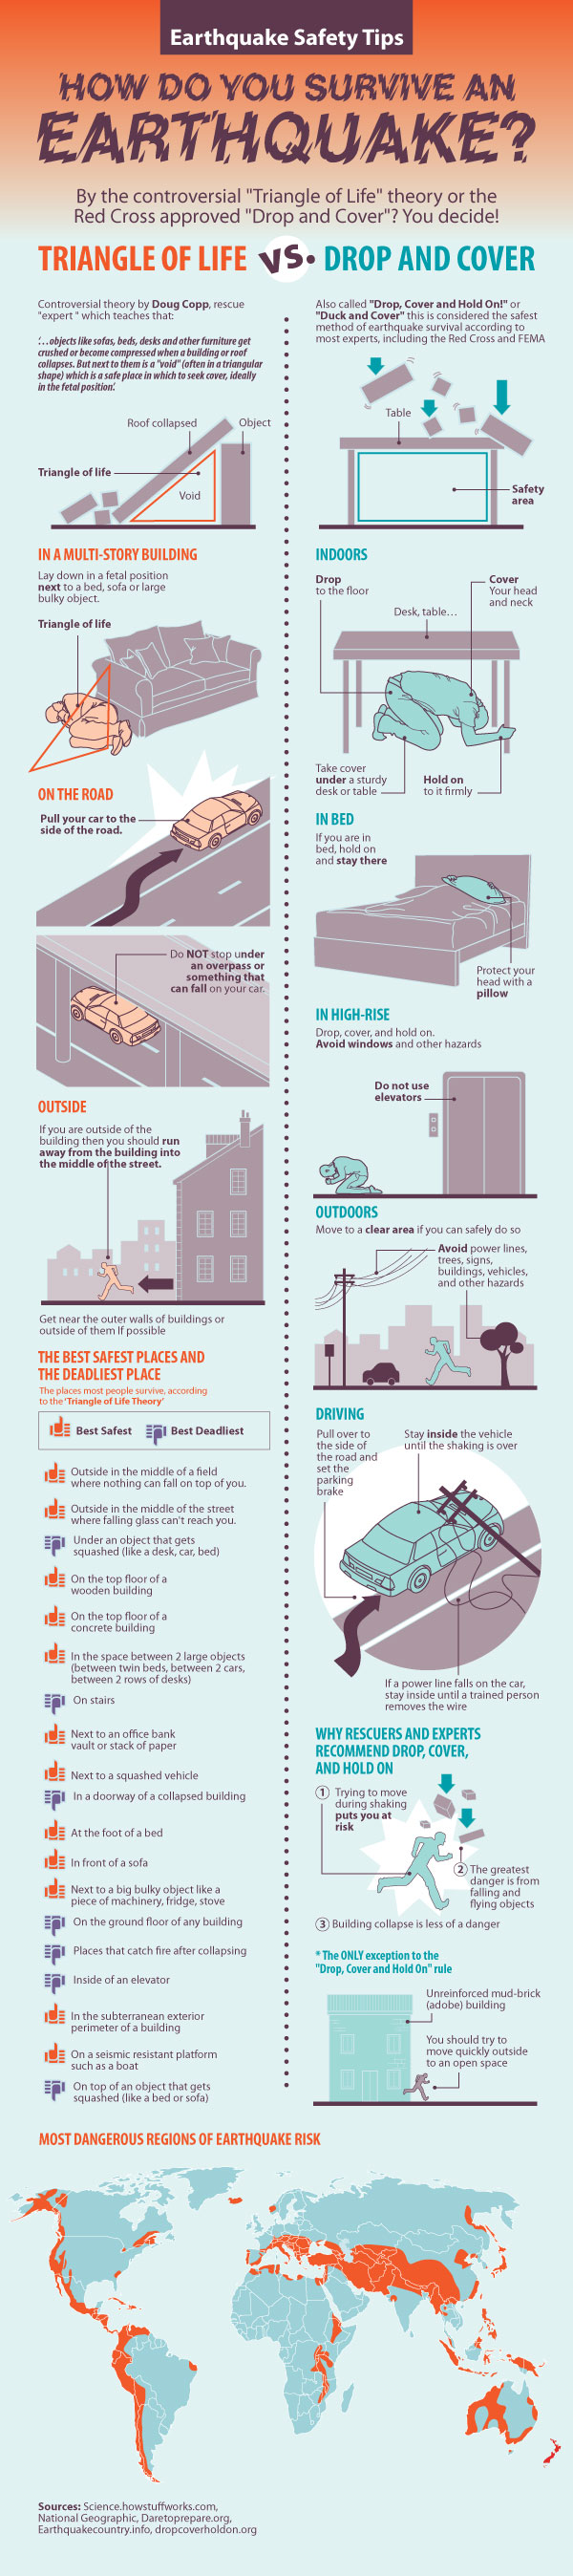 How Do You Survive An Earthquake? Infographic on earthquake safety tips